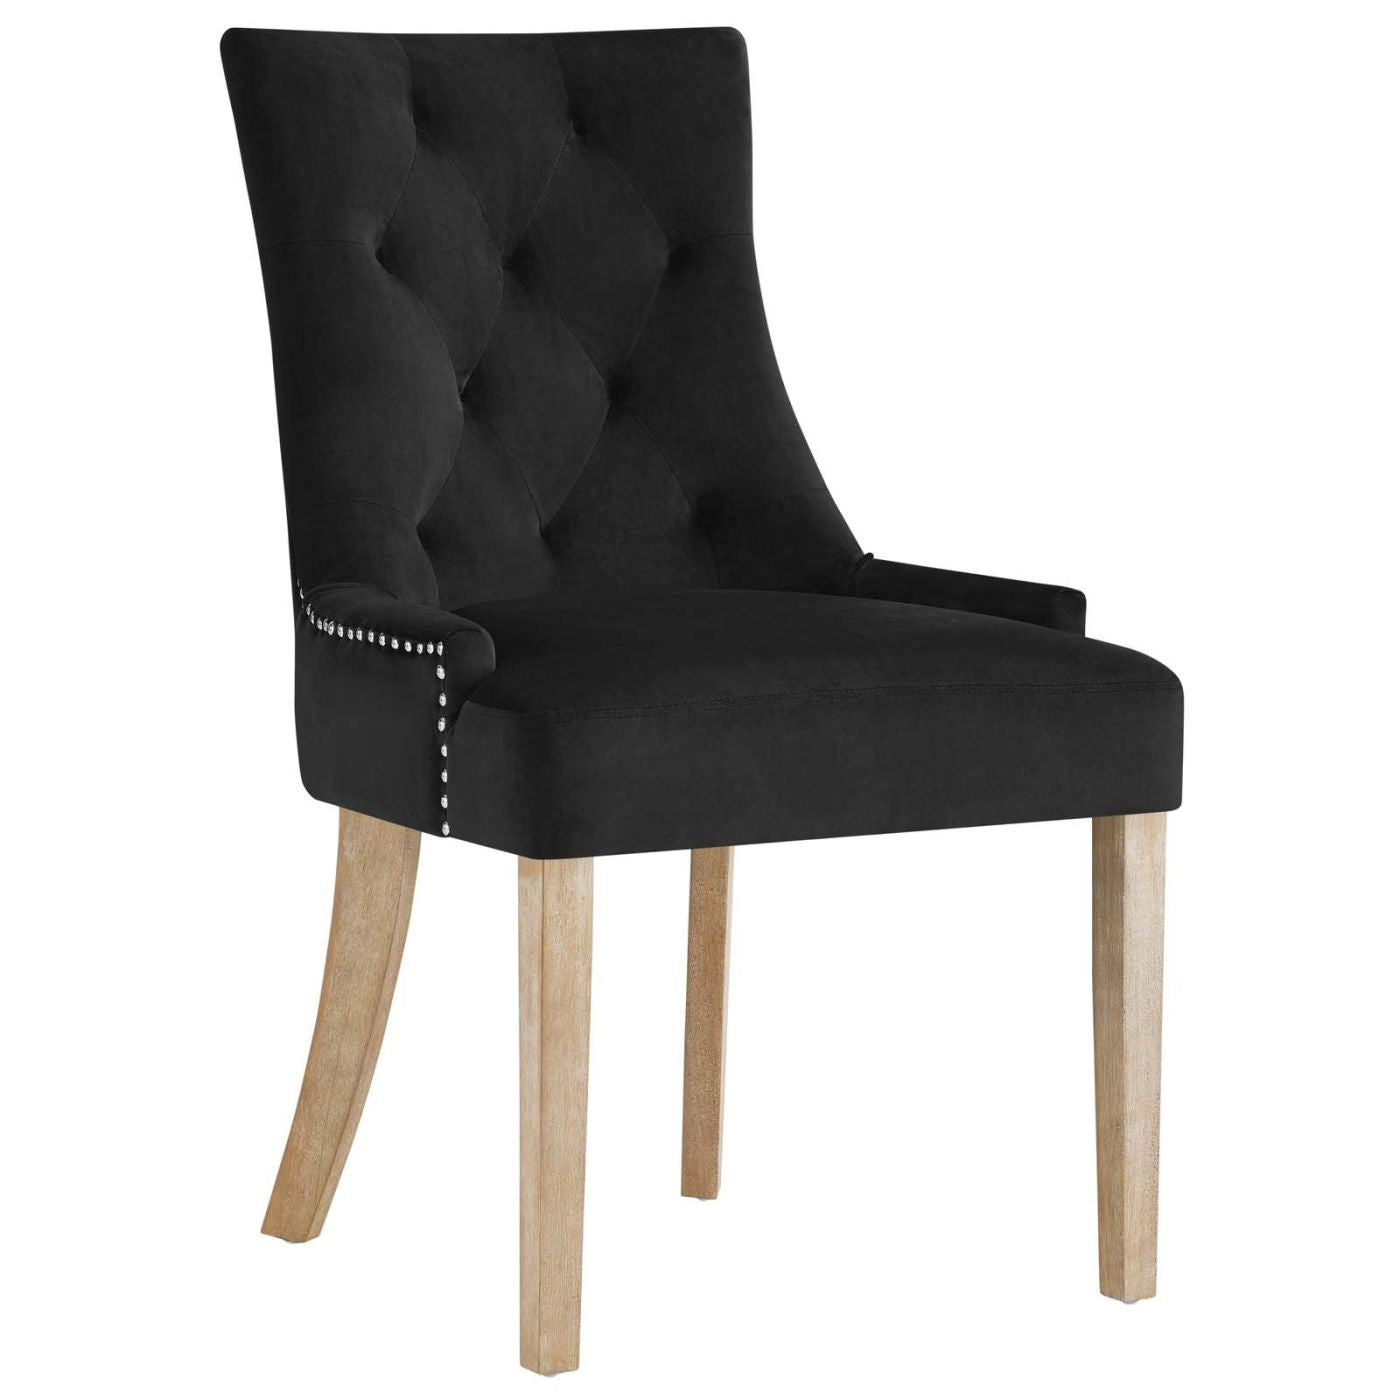 Pose upholstered fabric dining chair black